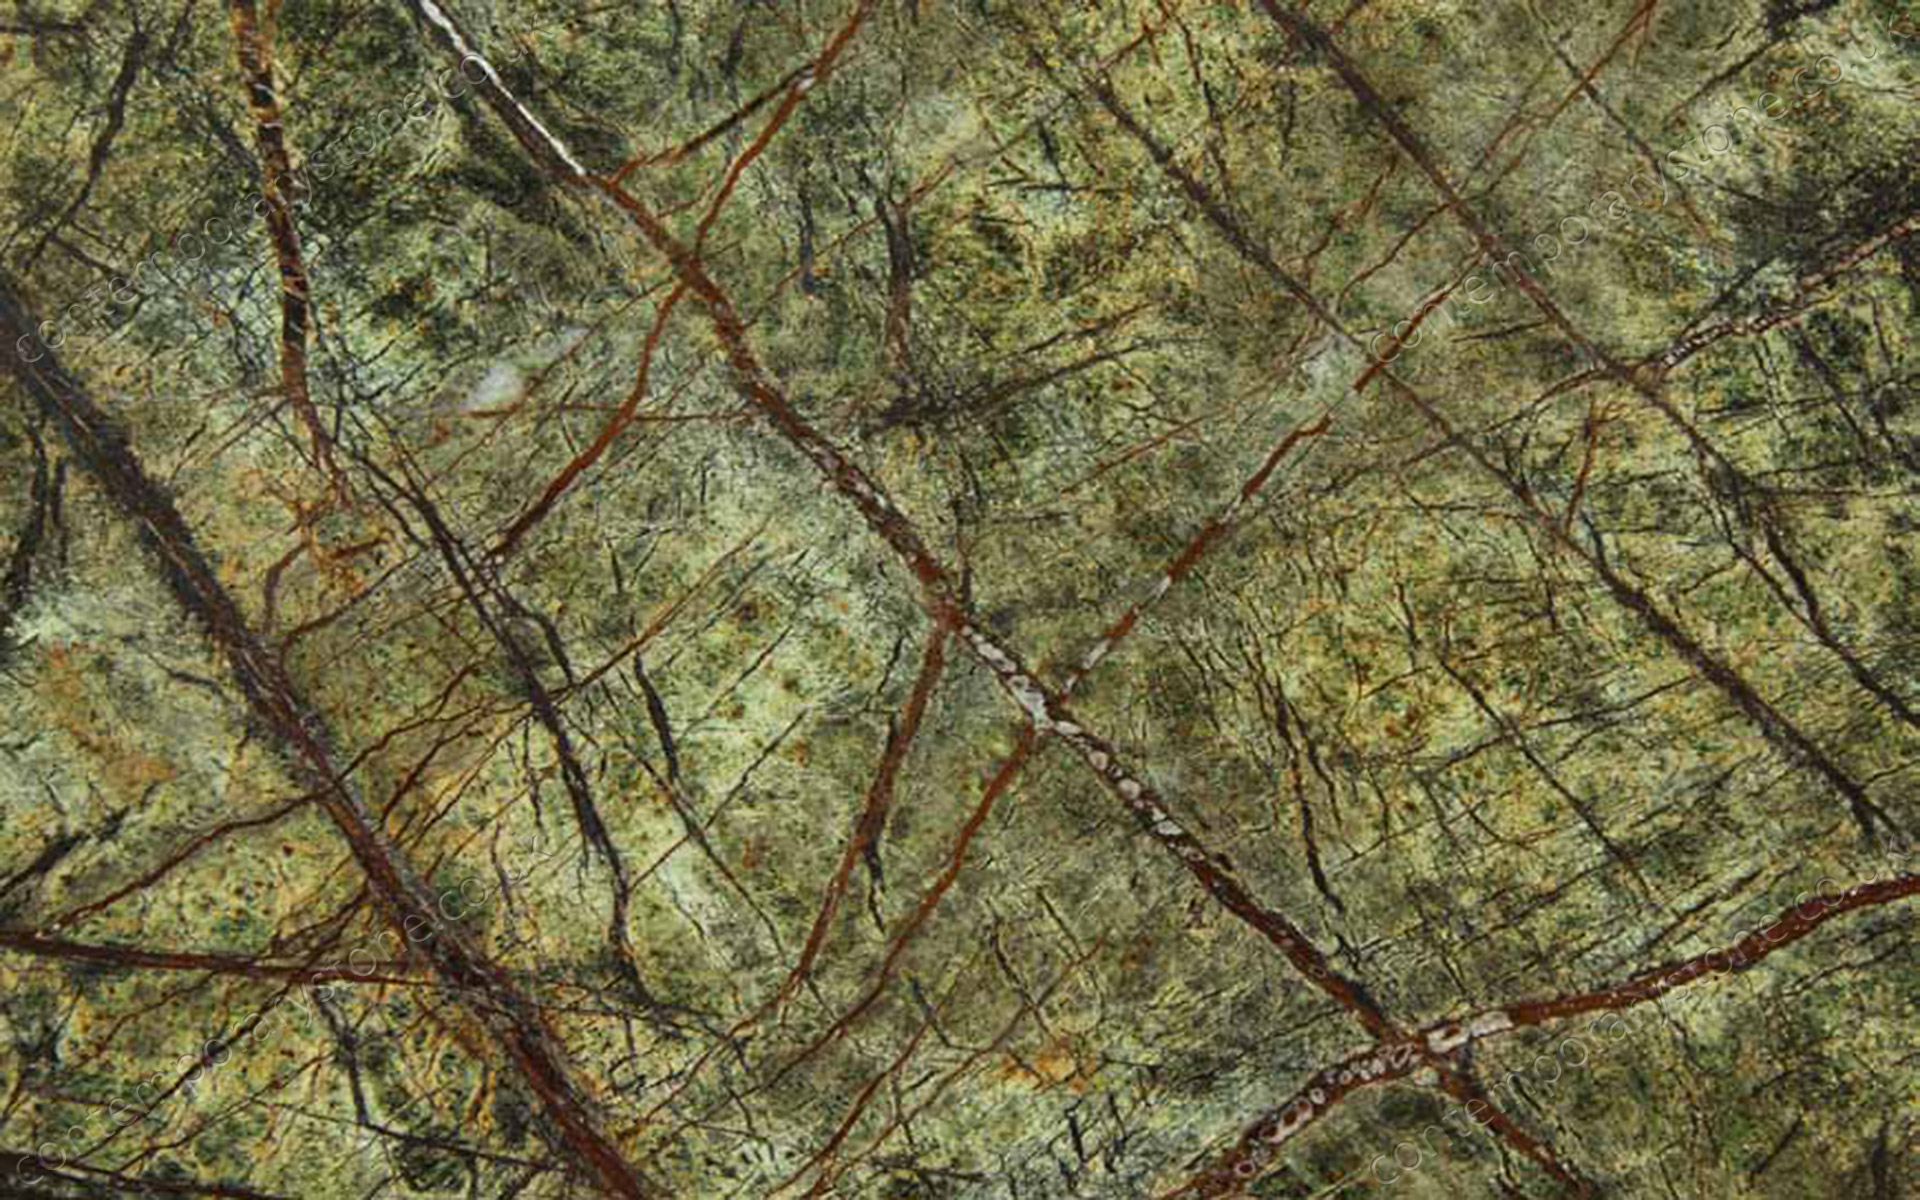 Rainforest Green marble close-up